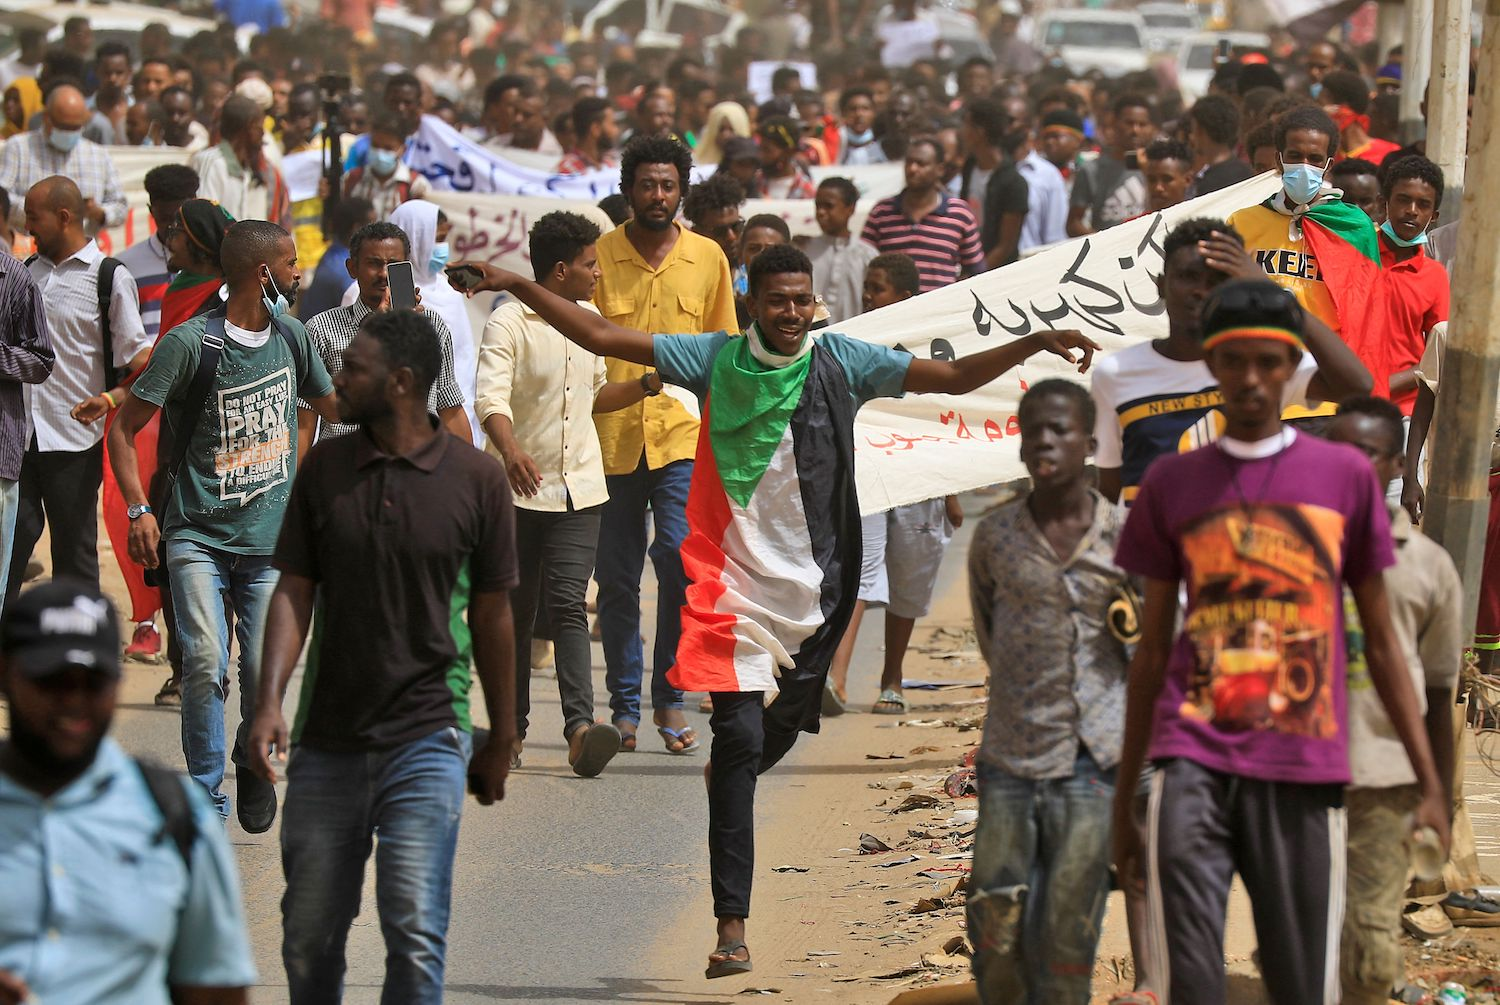 Sudanese protesters participate in a march urging the government to step down over delayed justice and recent economic reforms in Khartoum, Sudan, on June 30.